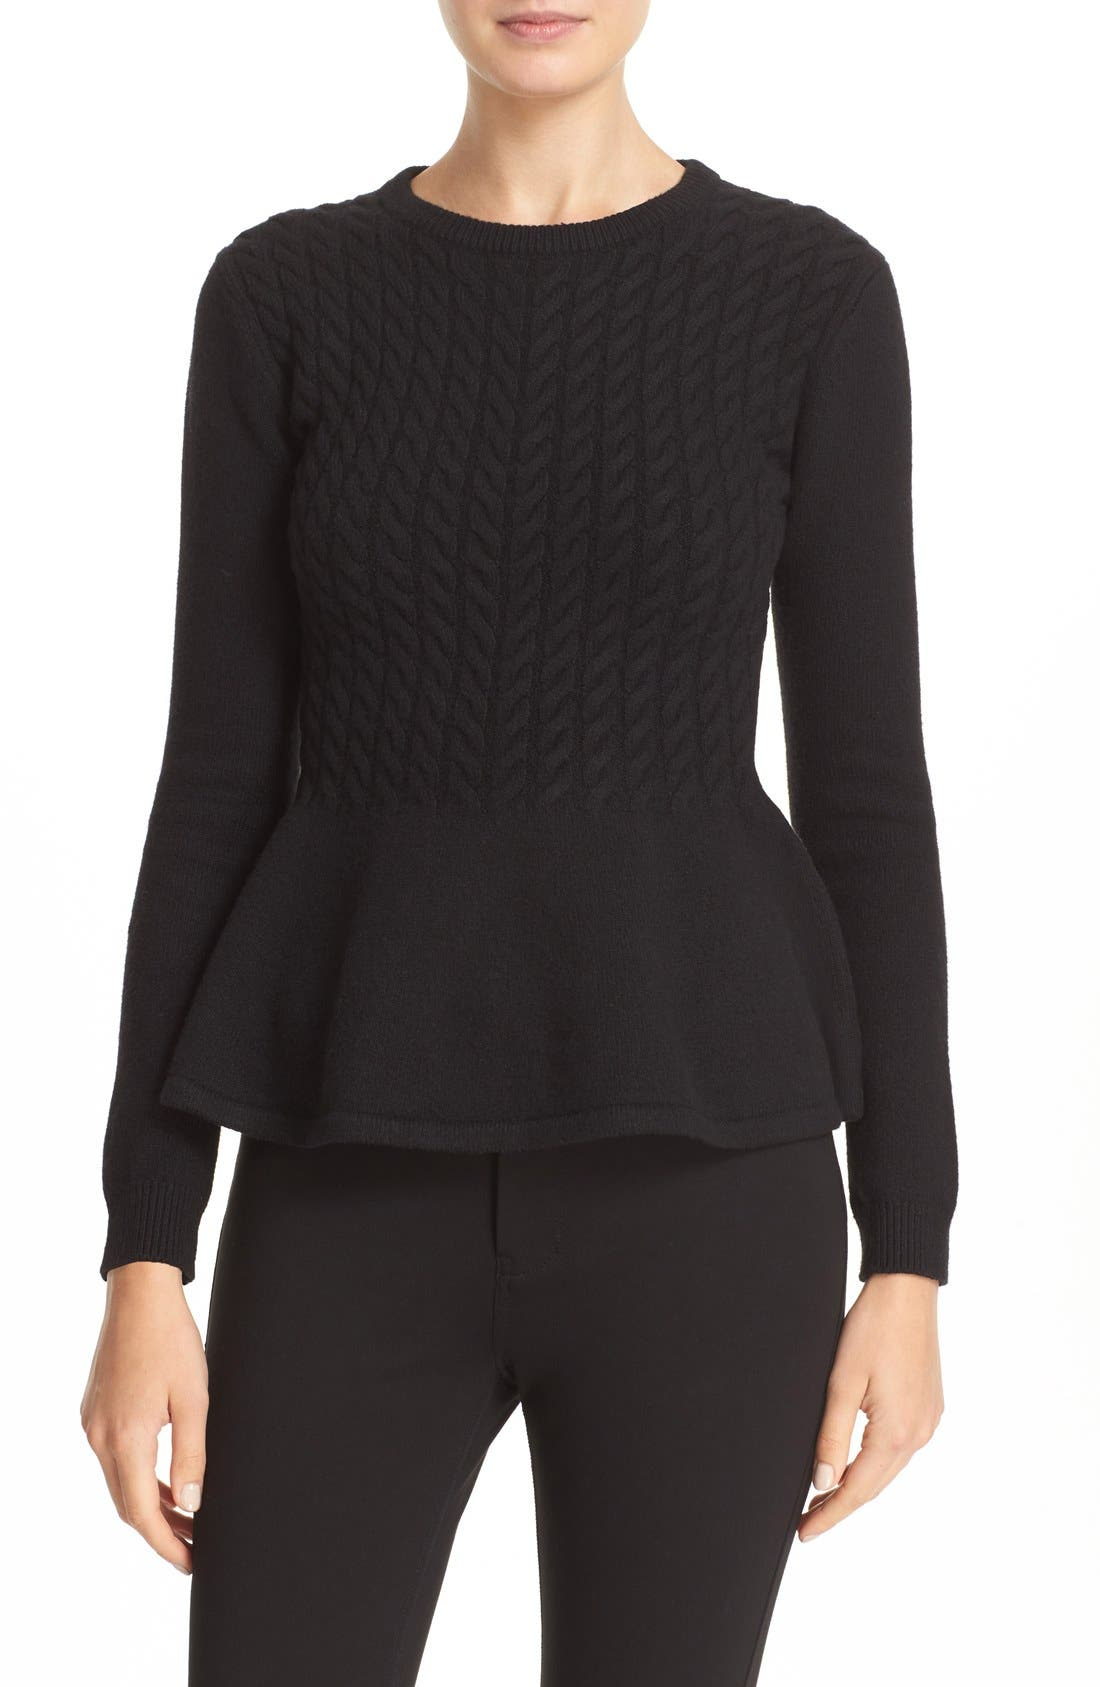 TED BAKER LONDON 'Mereda' Cable Knit Peplum Sweater, Main, color, 001